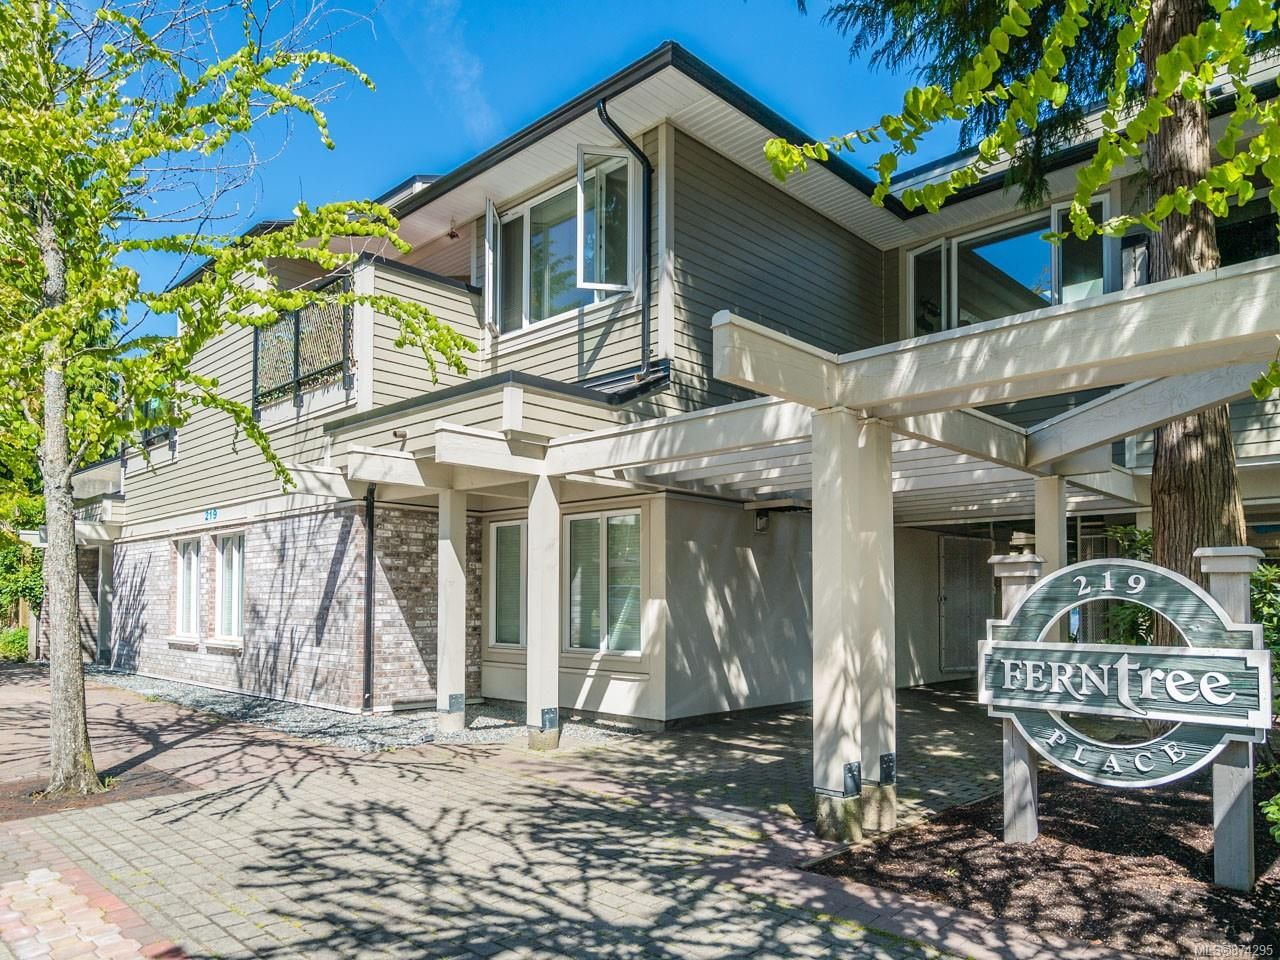 Main Photo: 1 219 W Fern Rd in : PQ Qualicum Beach Office for sale (Parksville/Qualicum)  : MLS®# 874295